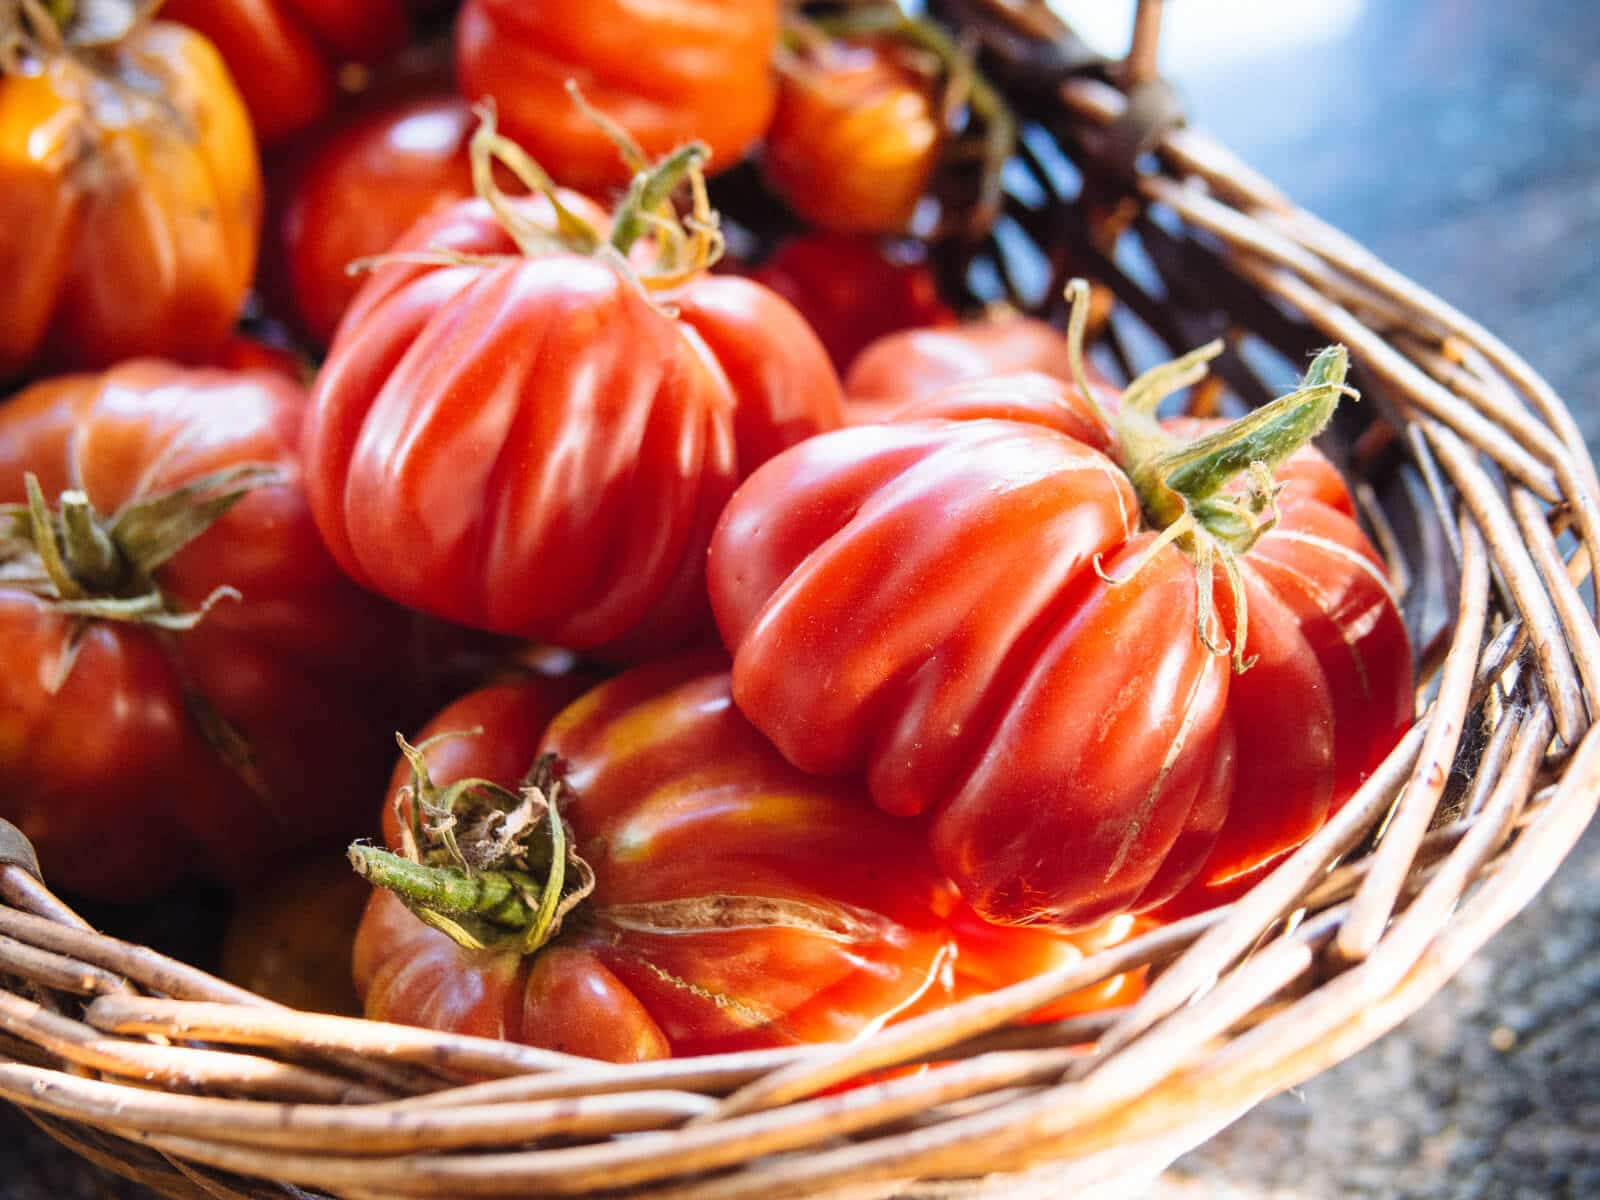 Tomato growing 101: 10 tips for a success harvest